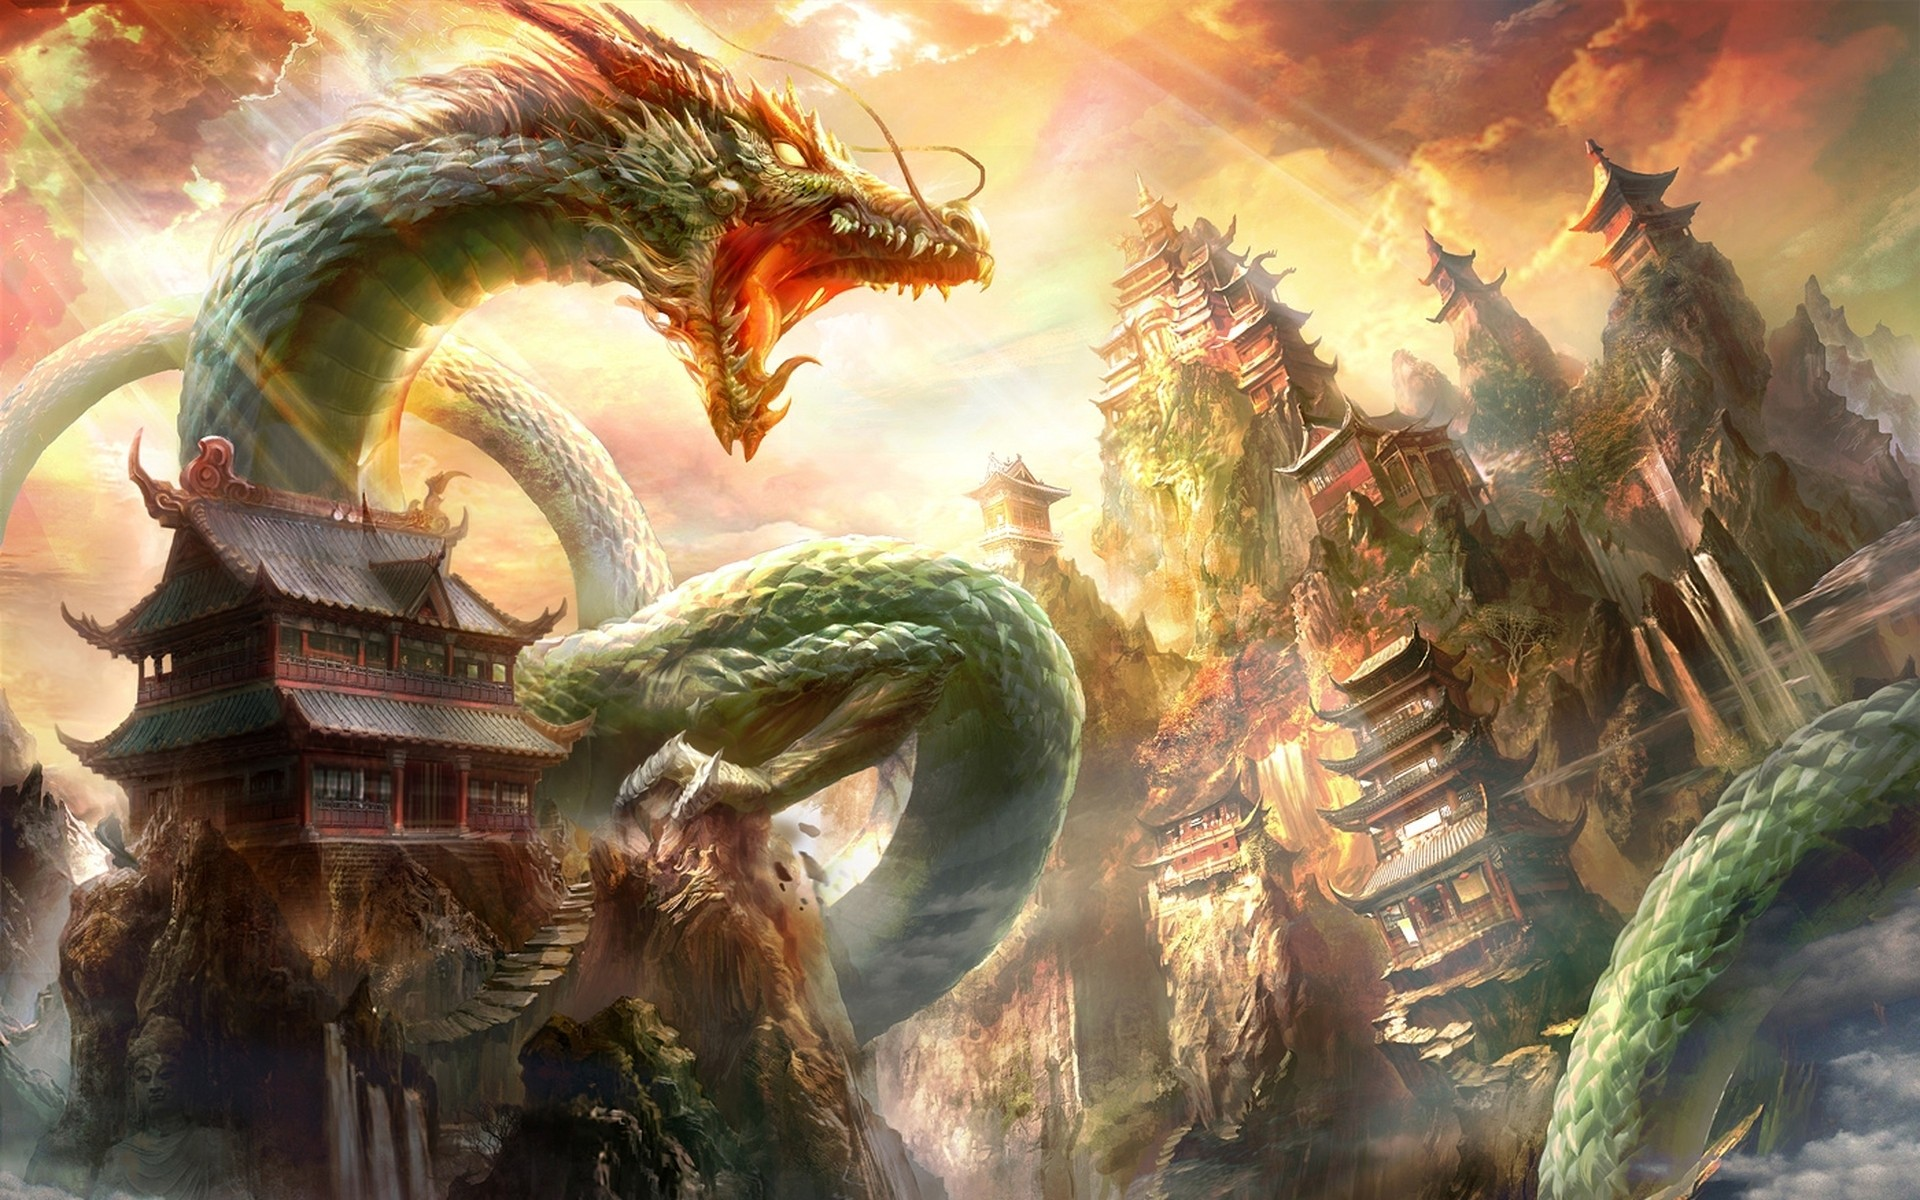 top 50 hd dragon wallpapers, images, backgrounds, desktop wallpapers